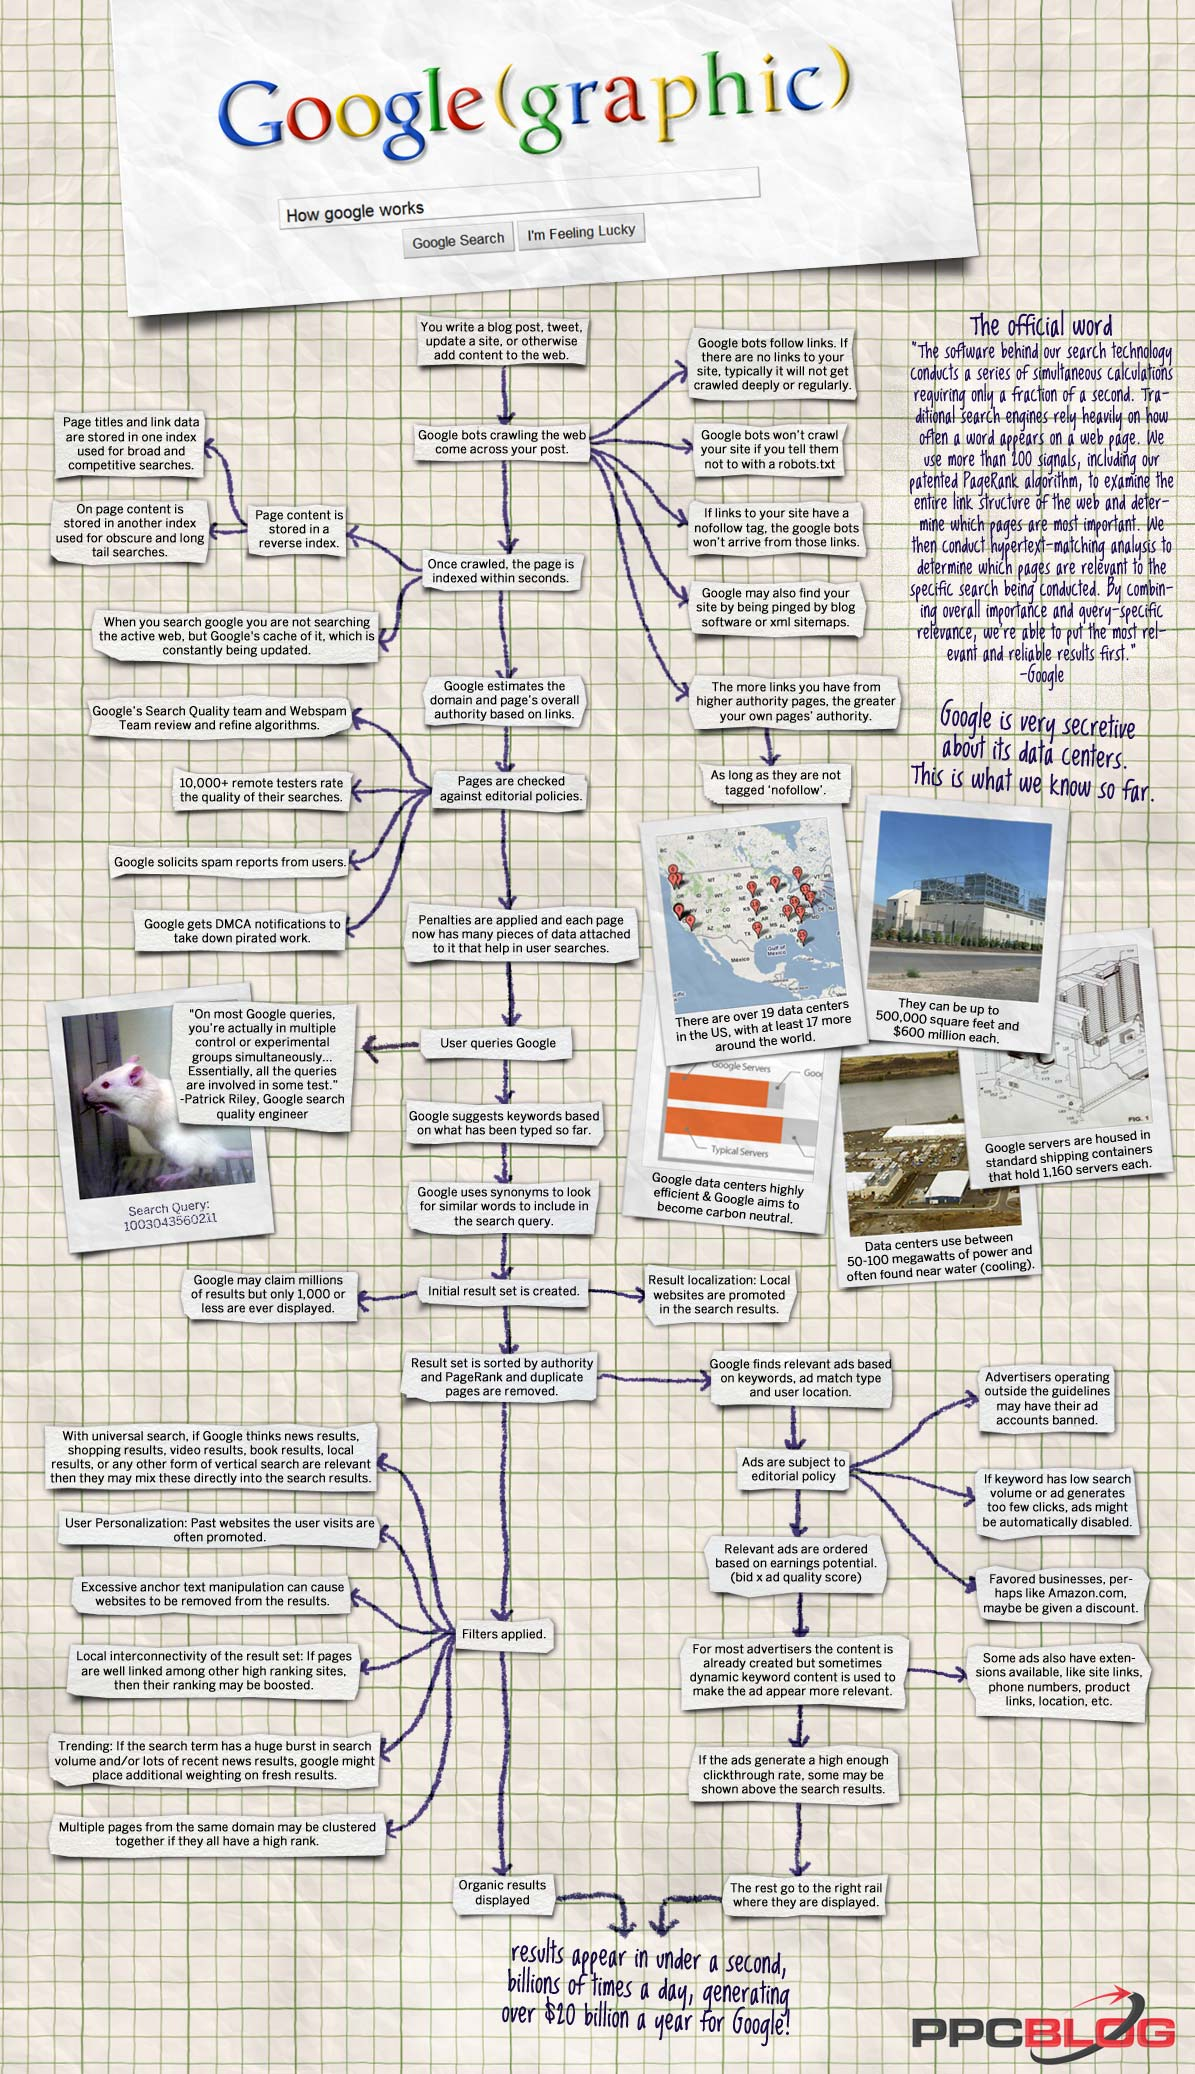 Infographic showing how google works